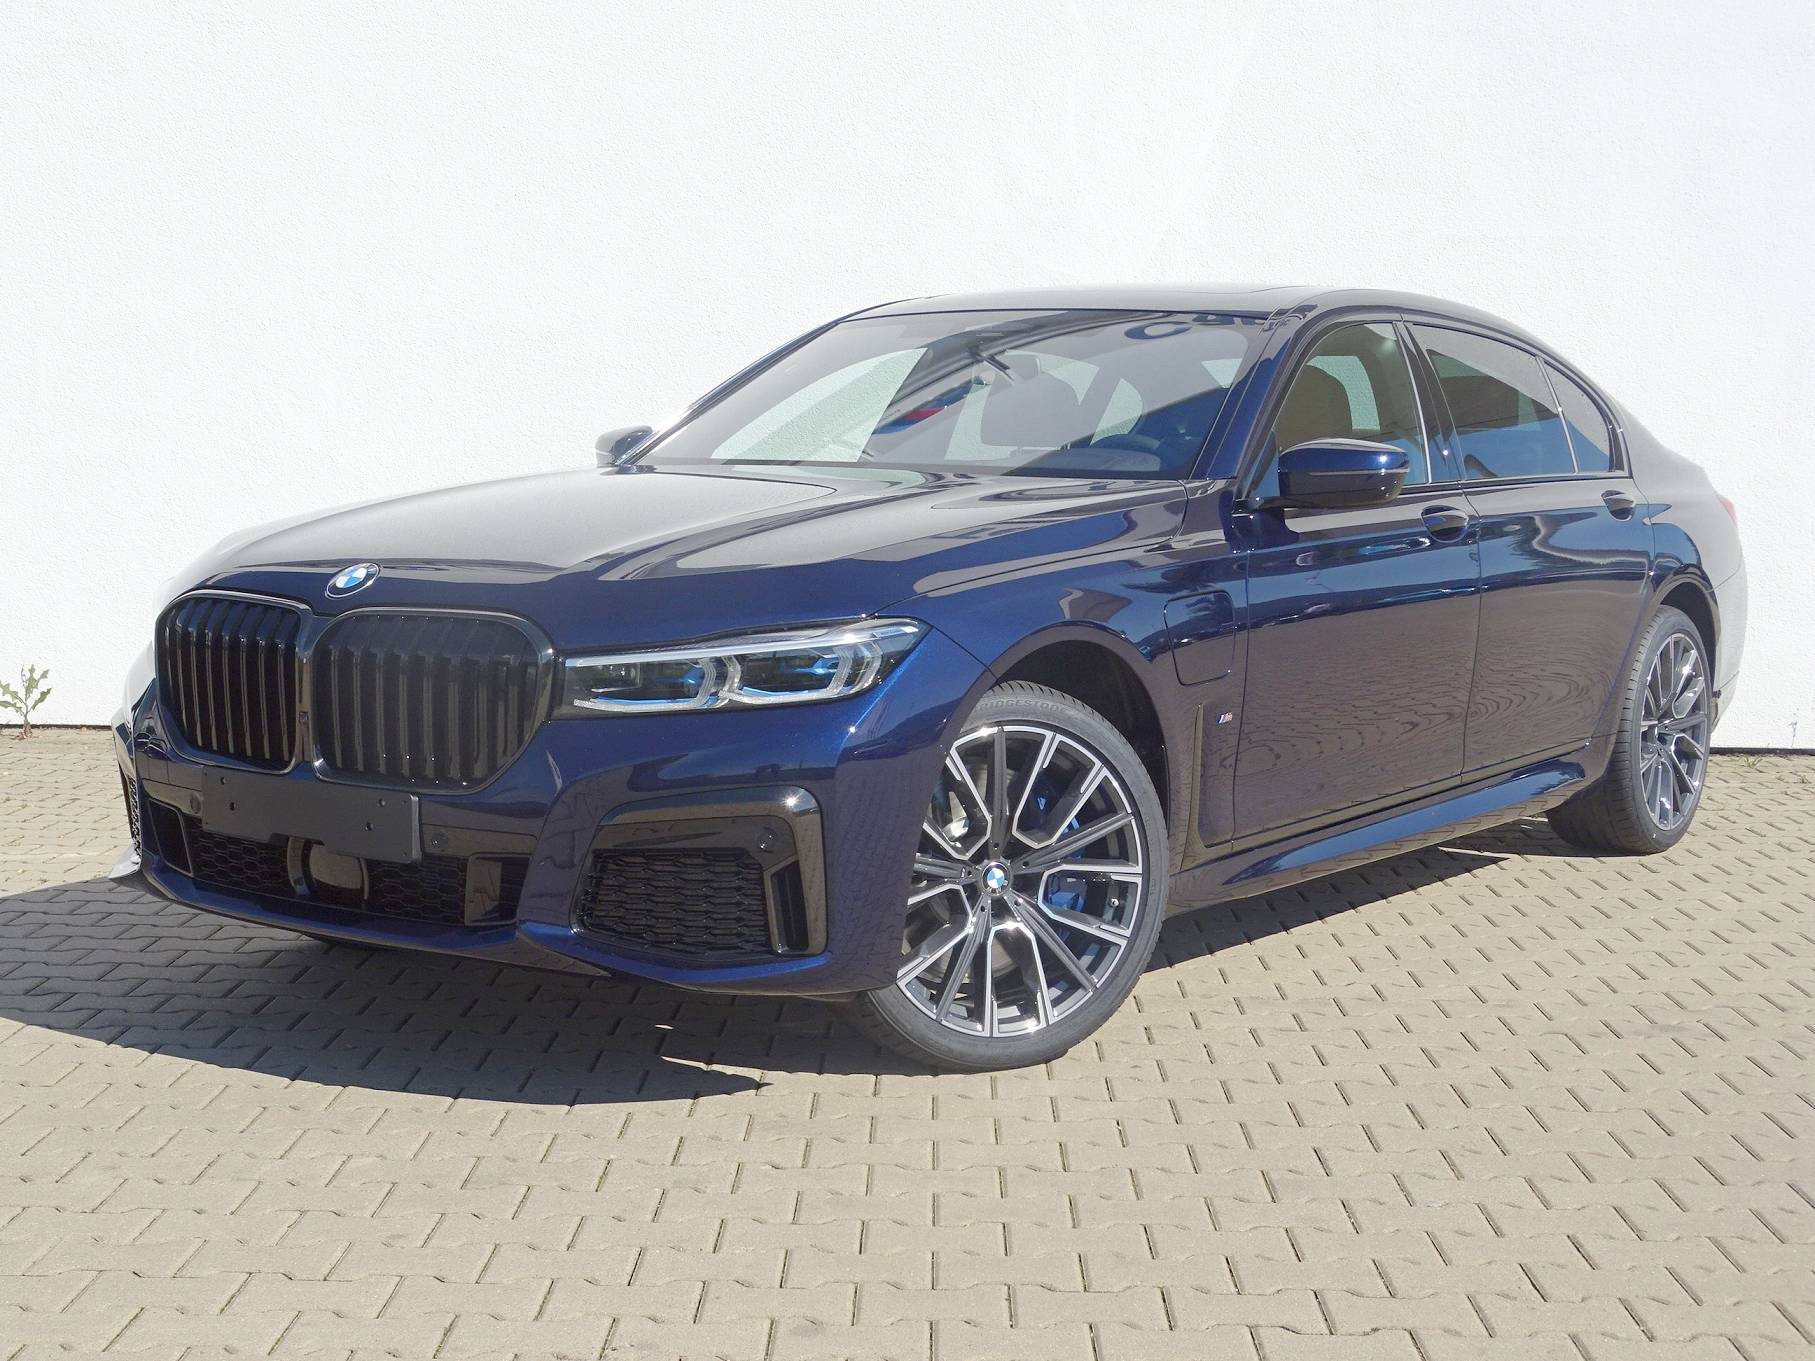 BMW 745Le xDrive iPerformance Sedan